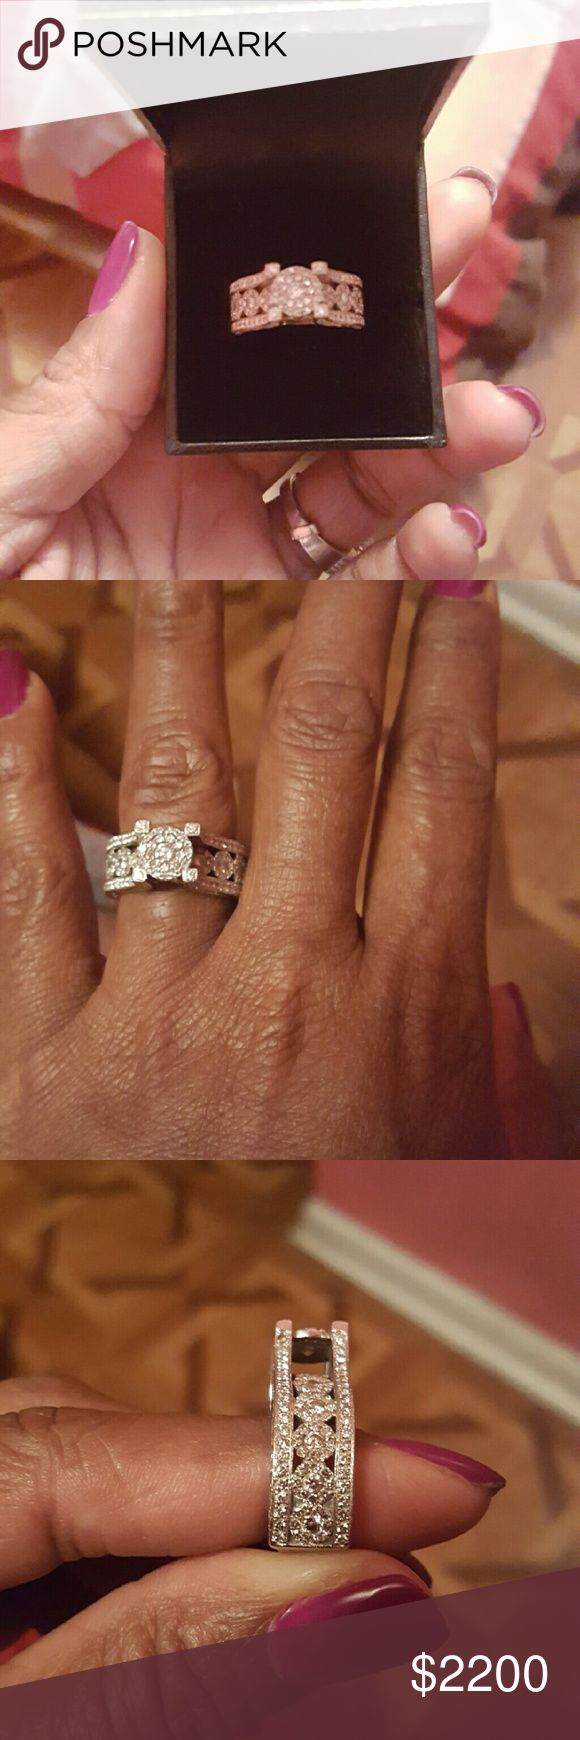 Engagement Ring 14k white gold 3 karat beautiful engagement ring for your fianc?. It's a thick band size 6 but had to get a ring guard in it to fit my finger.. I do have the appraisal paperwork that came with it.. Jewelry Rings